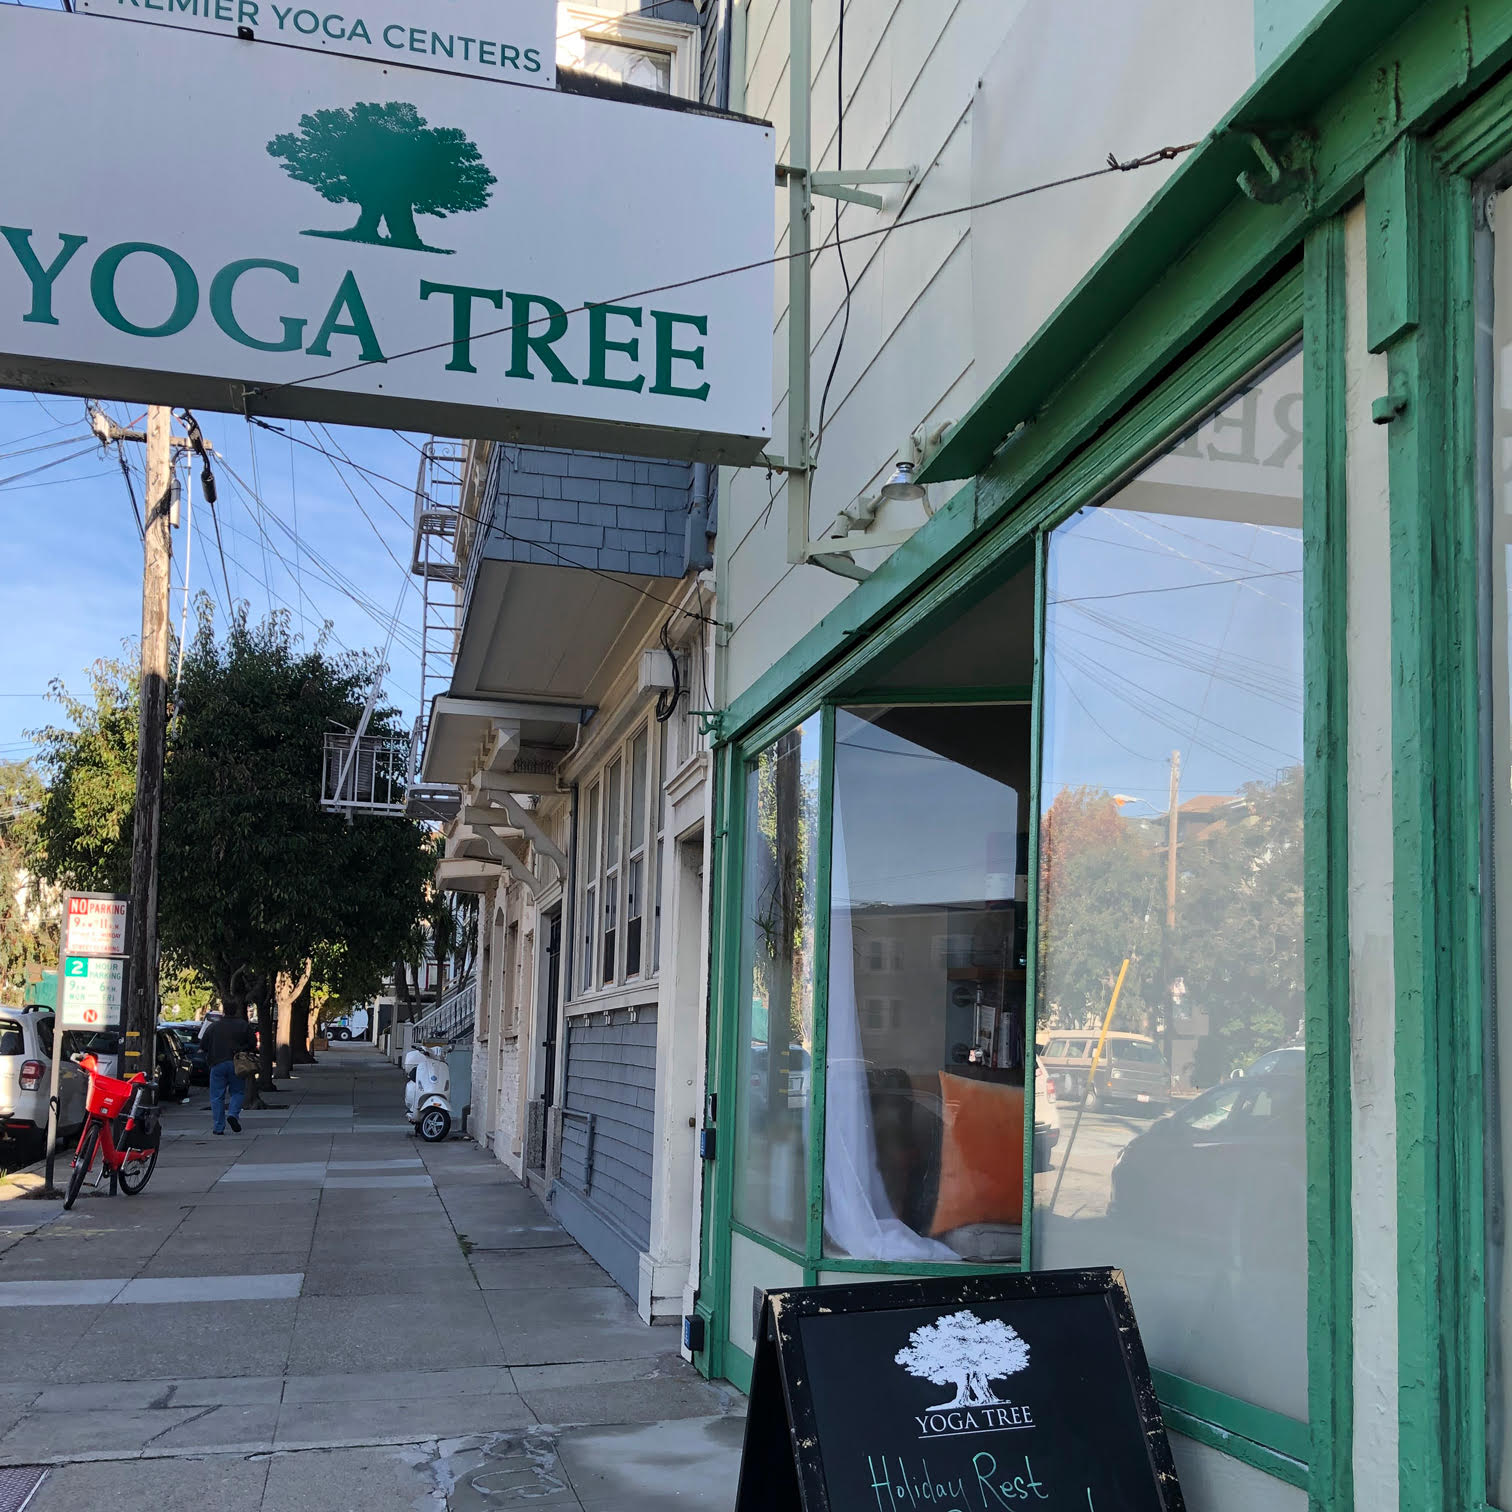 6th Avenue Yoga Studio | Yoga Classes | Yoga Tree SF